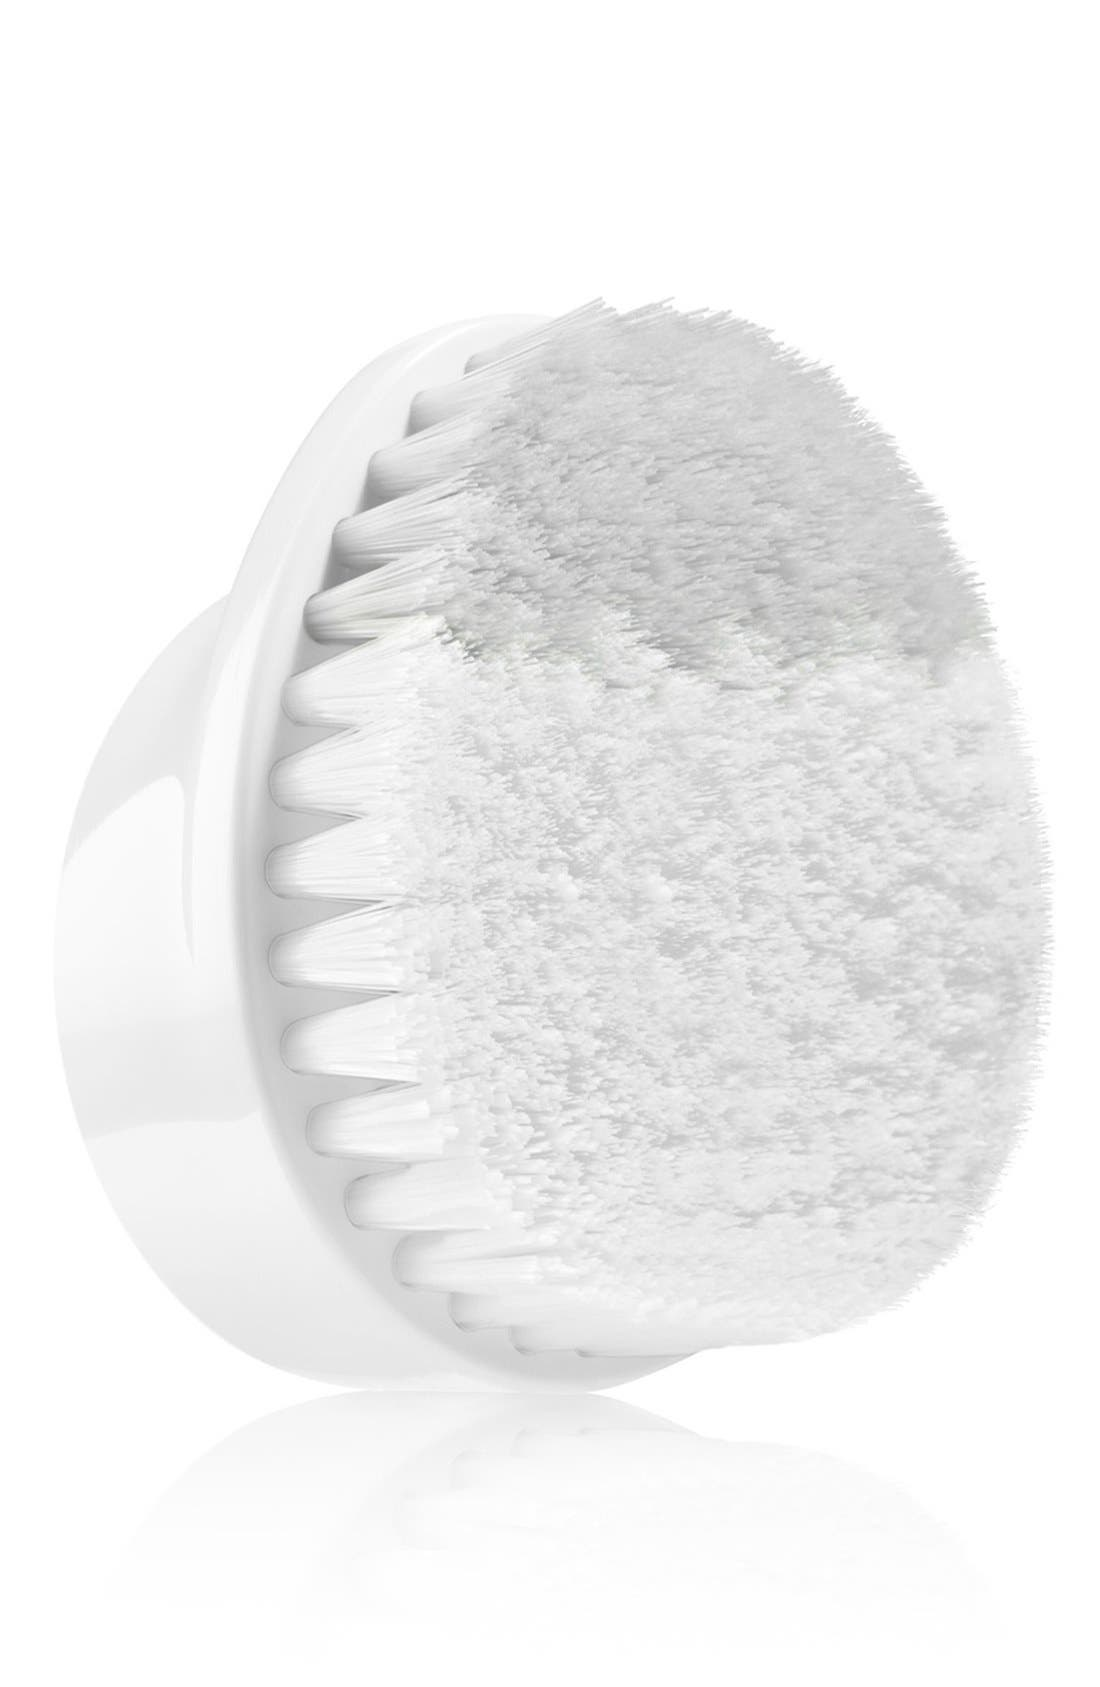 Extra Gentle Sonic System Cleansing Brush Head,                             Main thumbnail 1, color,                             000